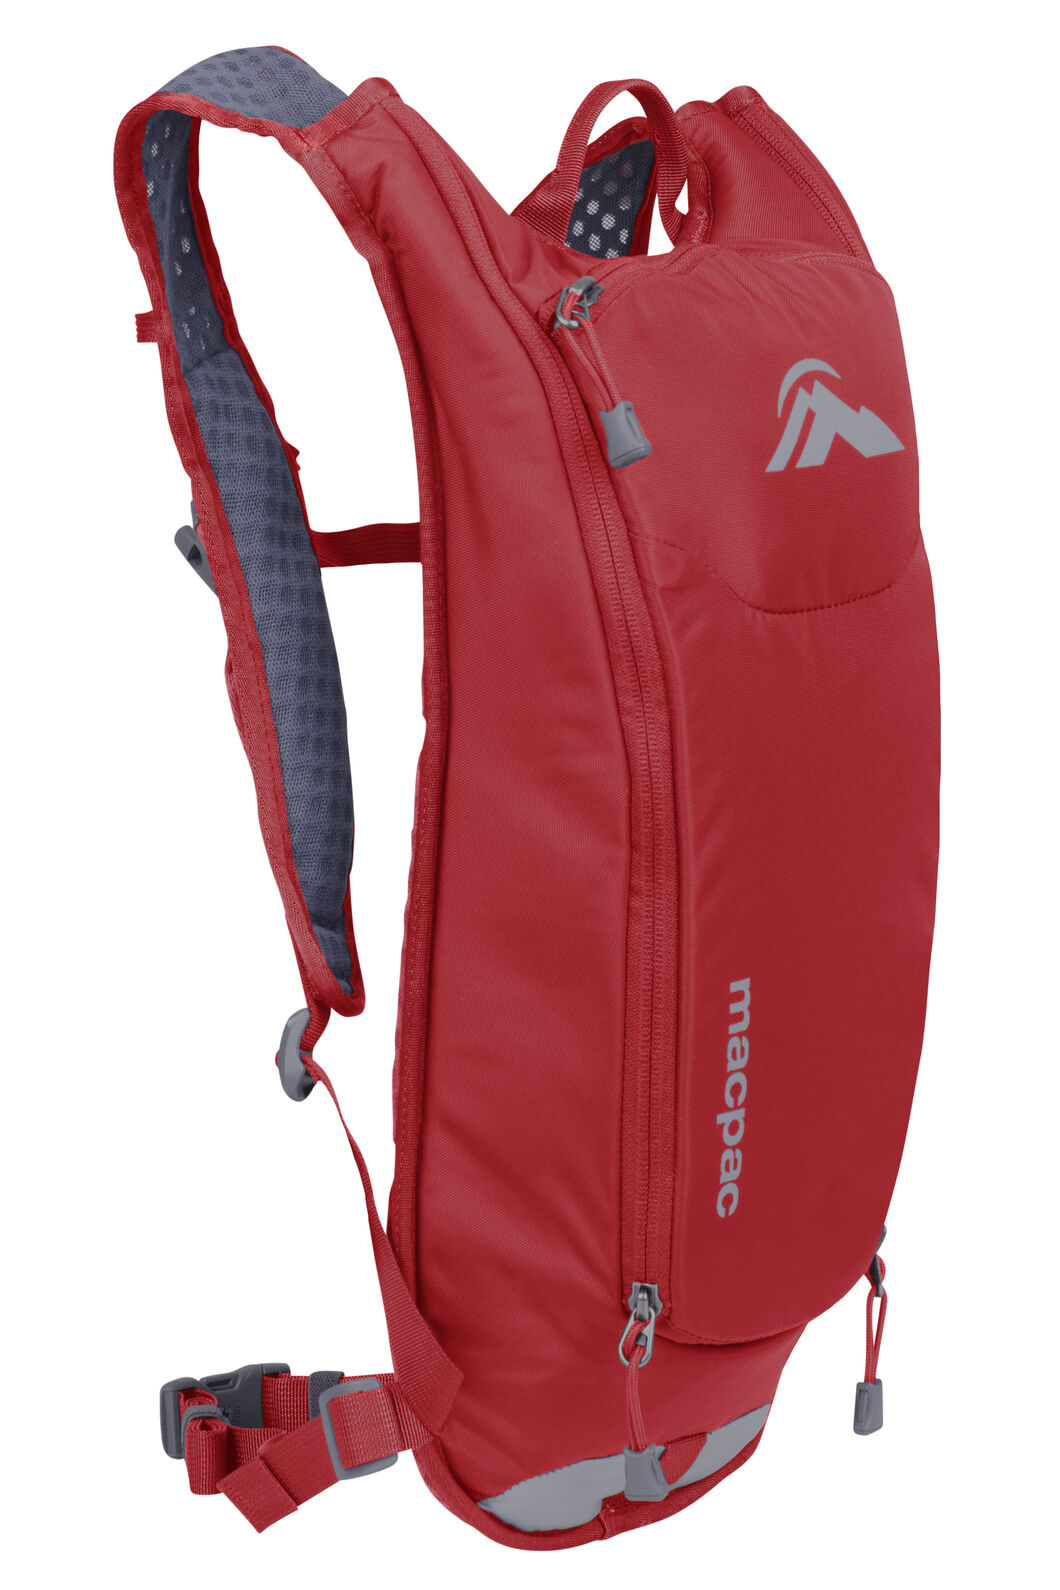 Macpac Amp H2O 2L Hydration Pack, Molten Lava, hi-res